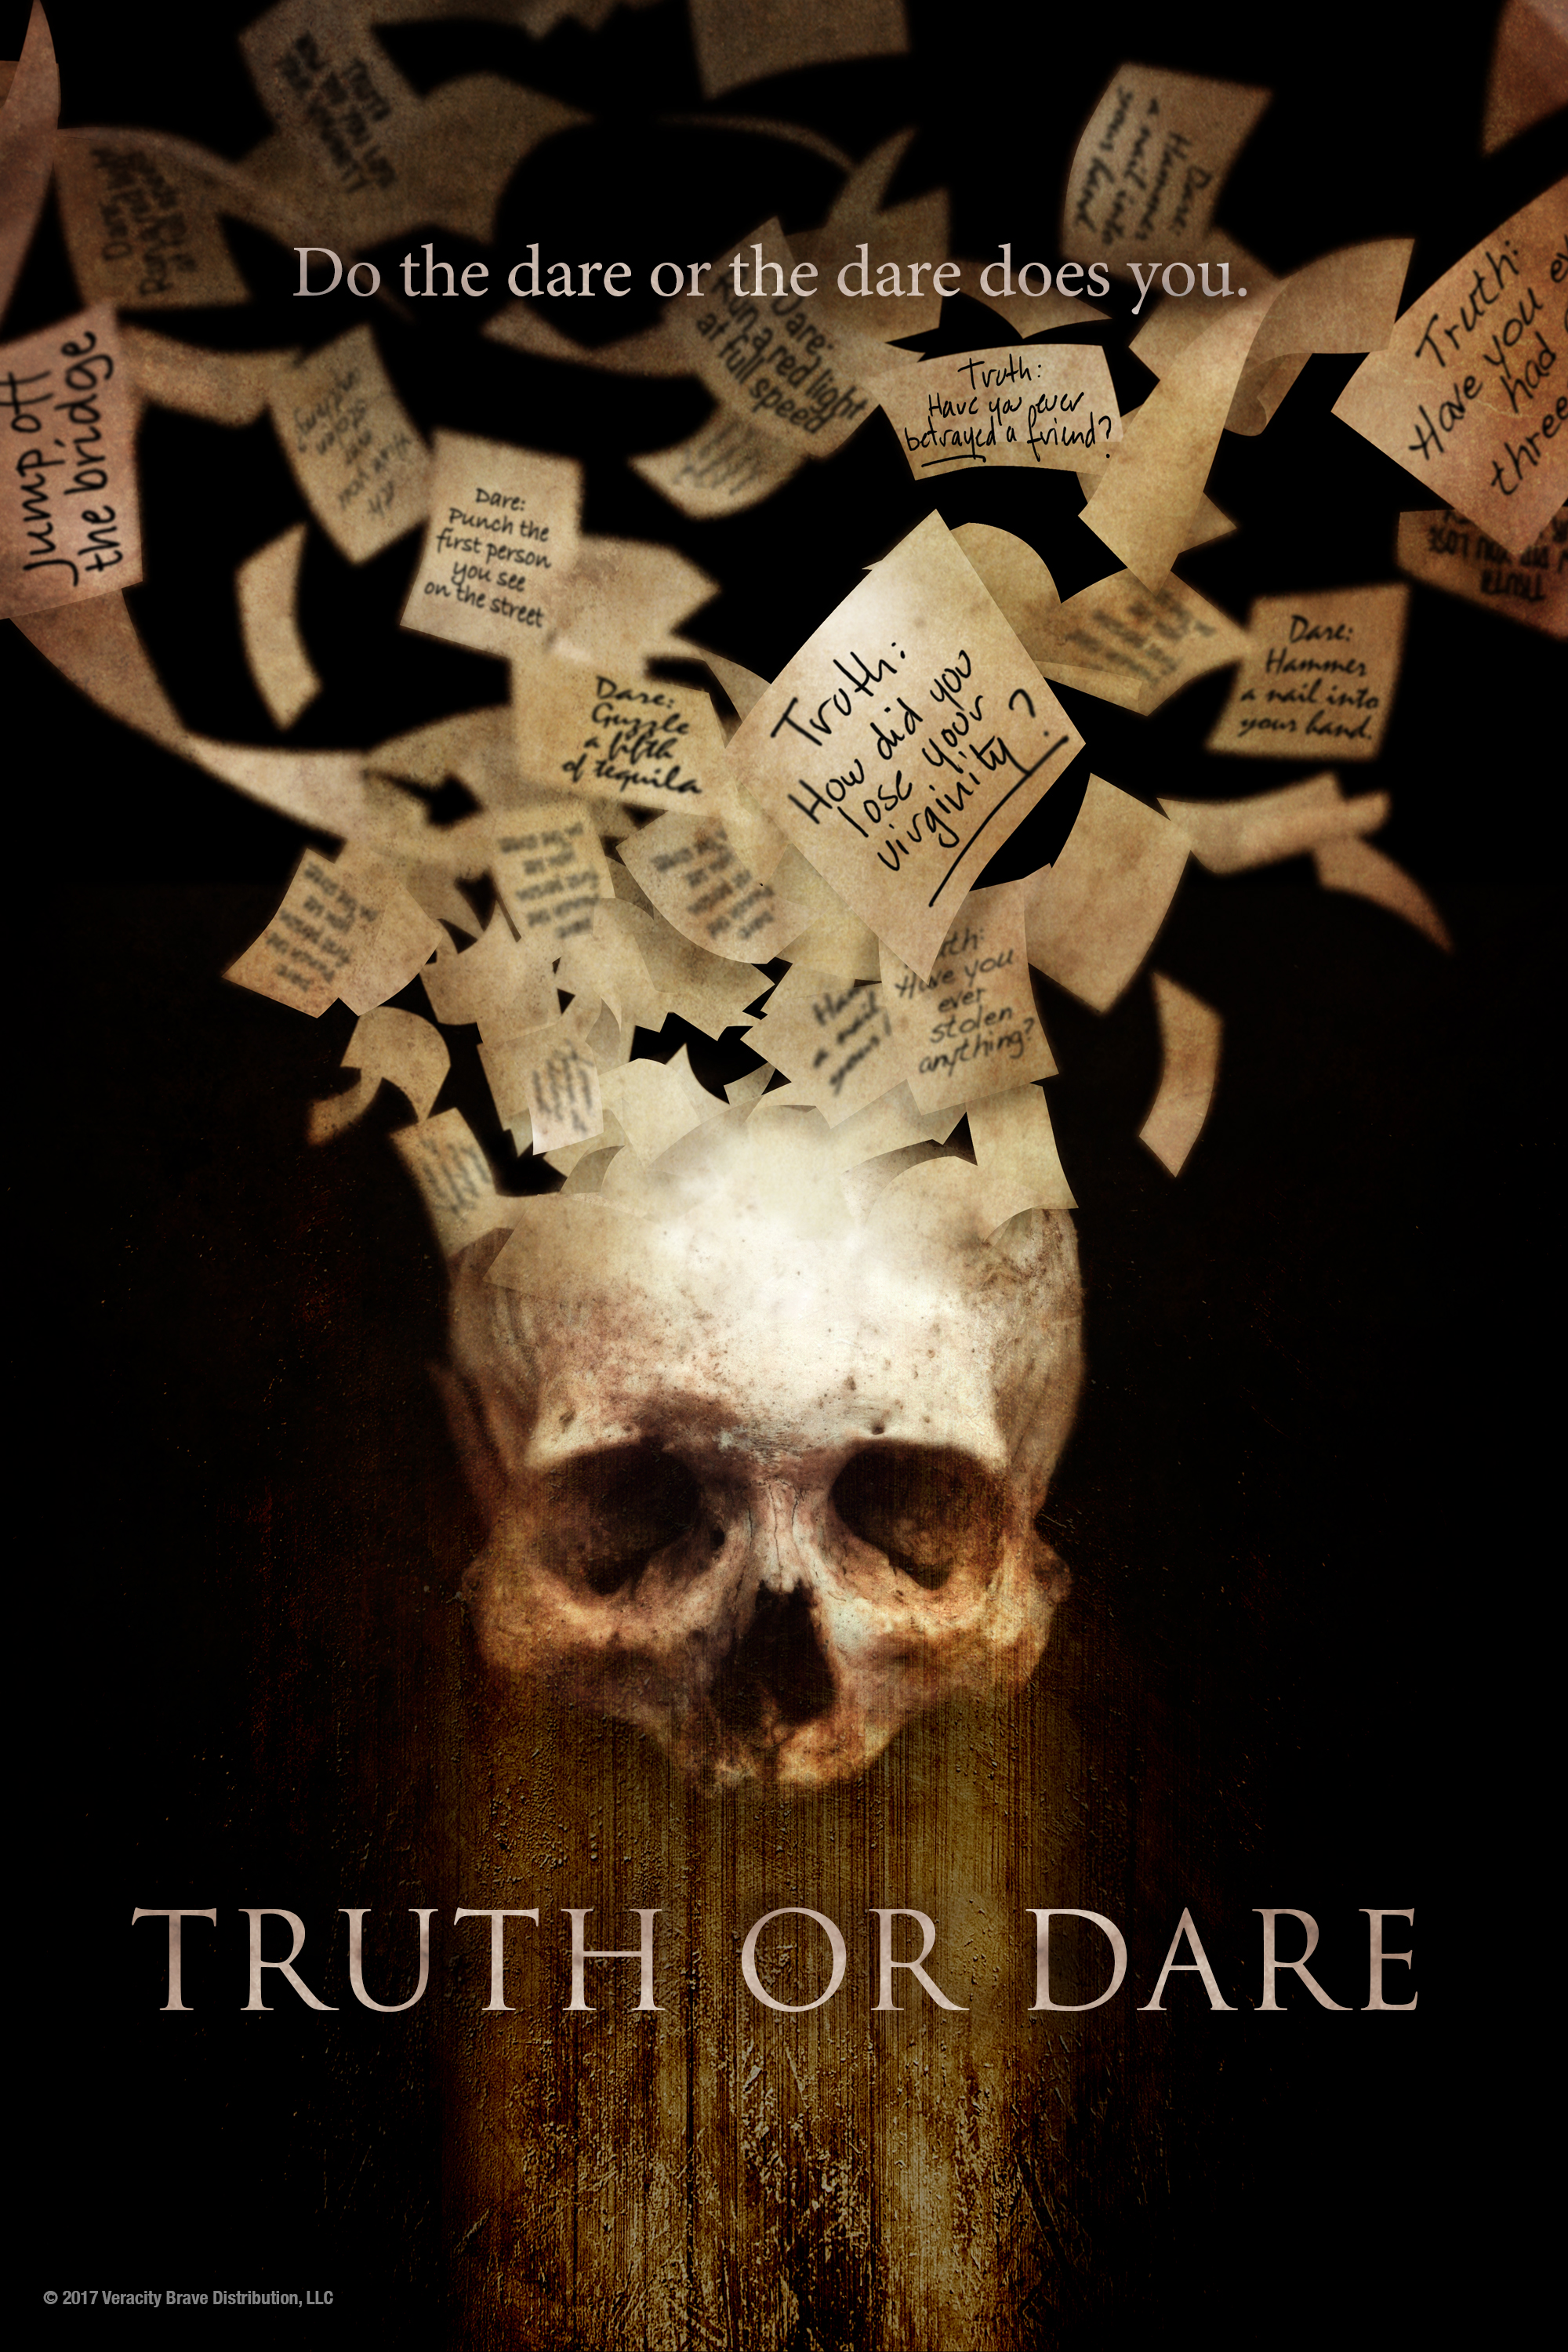 Truth and dare blog